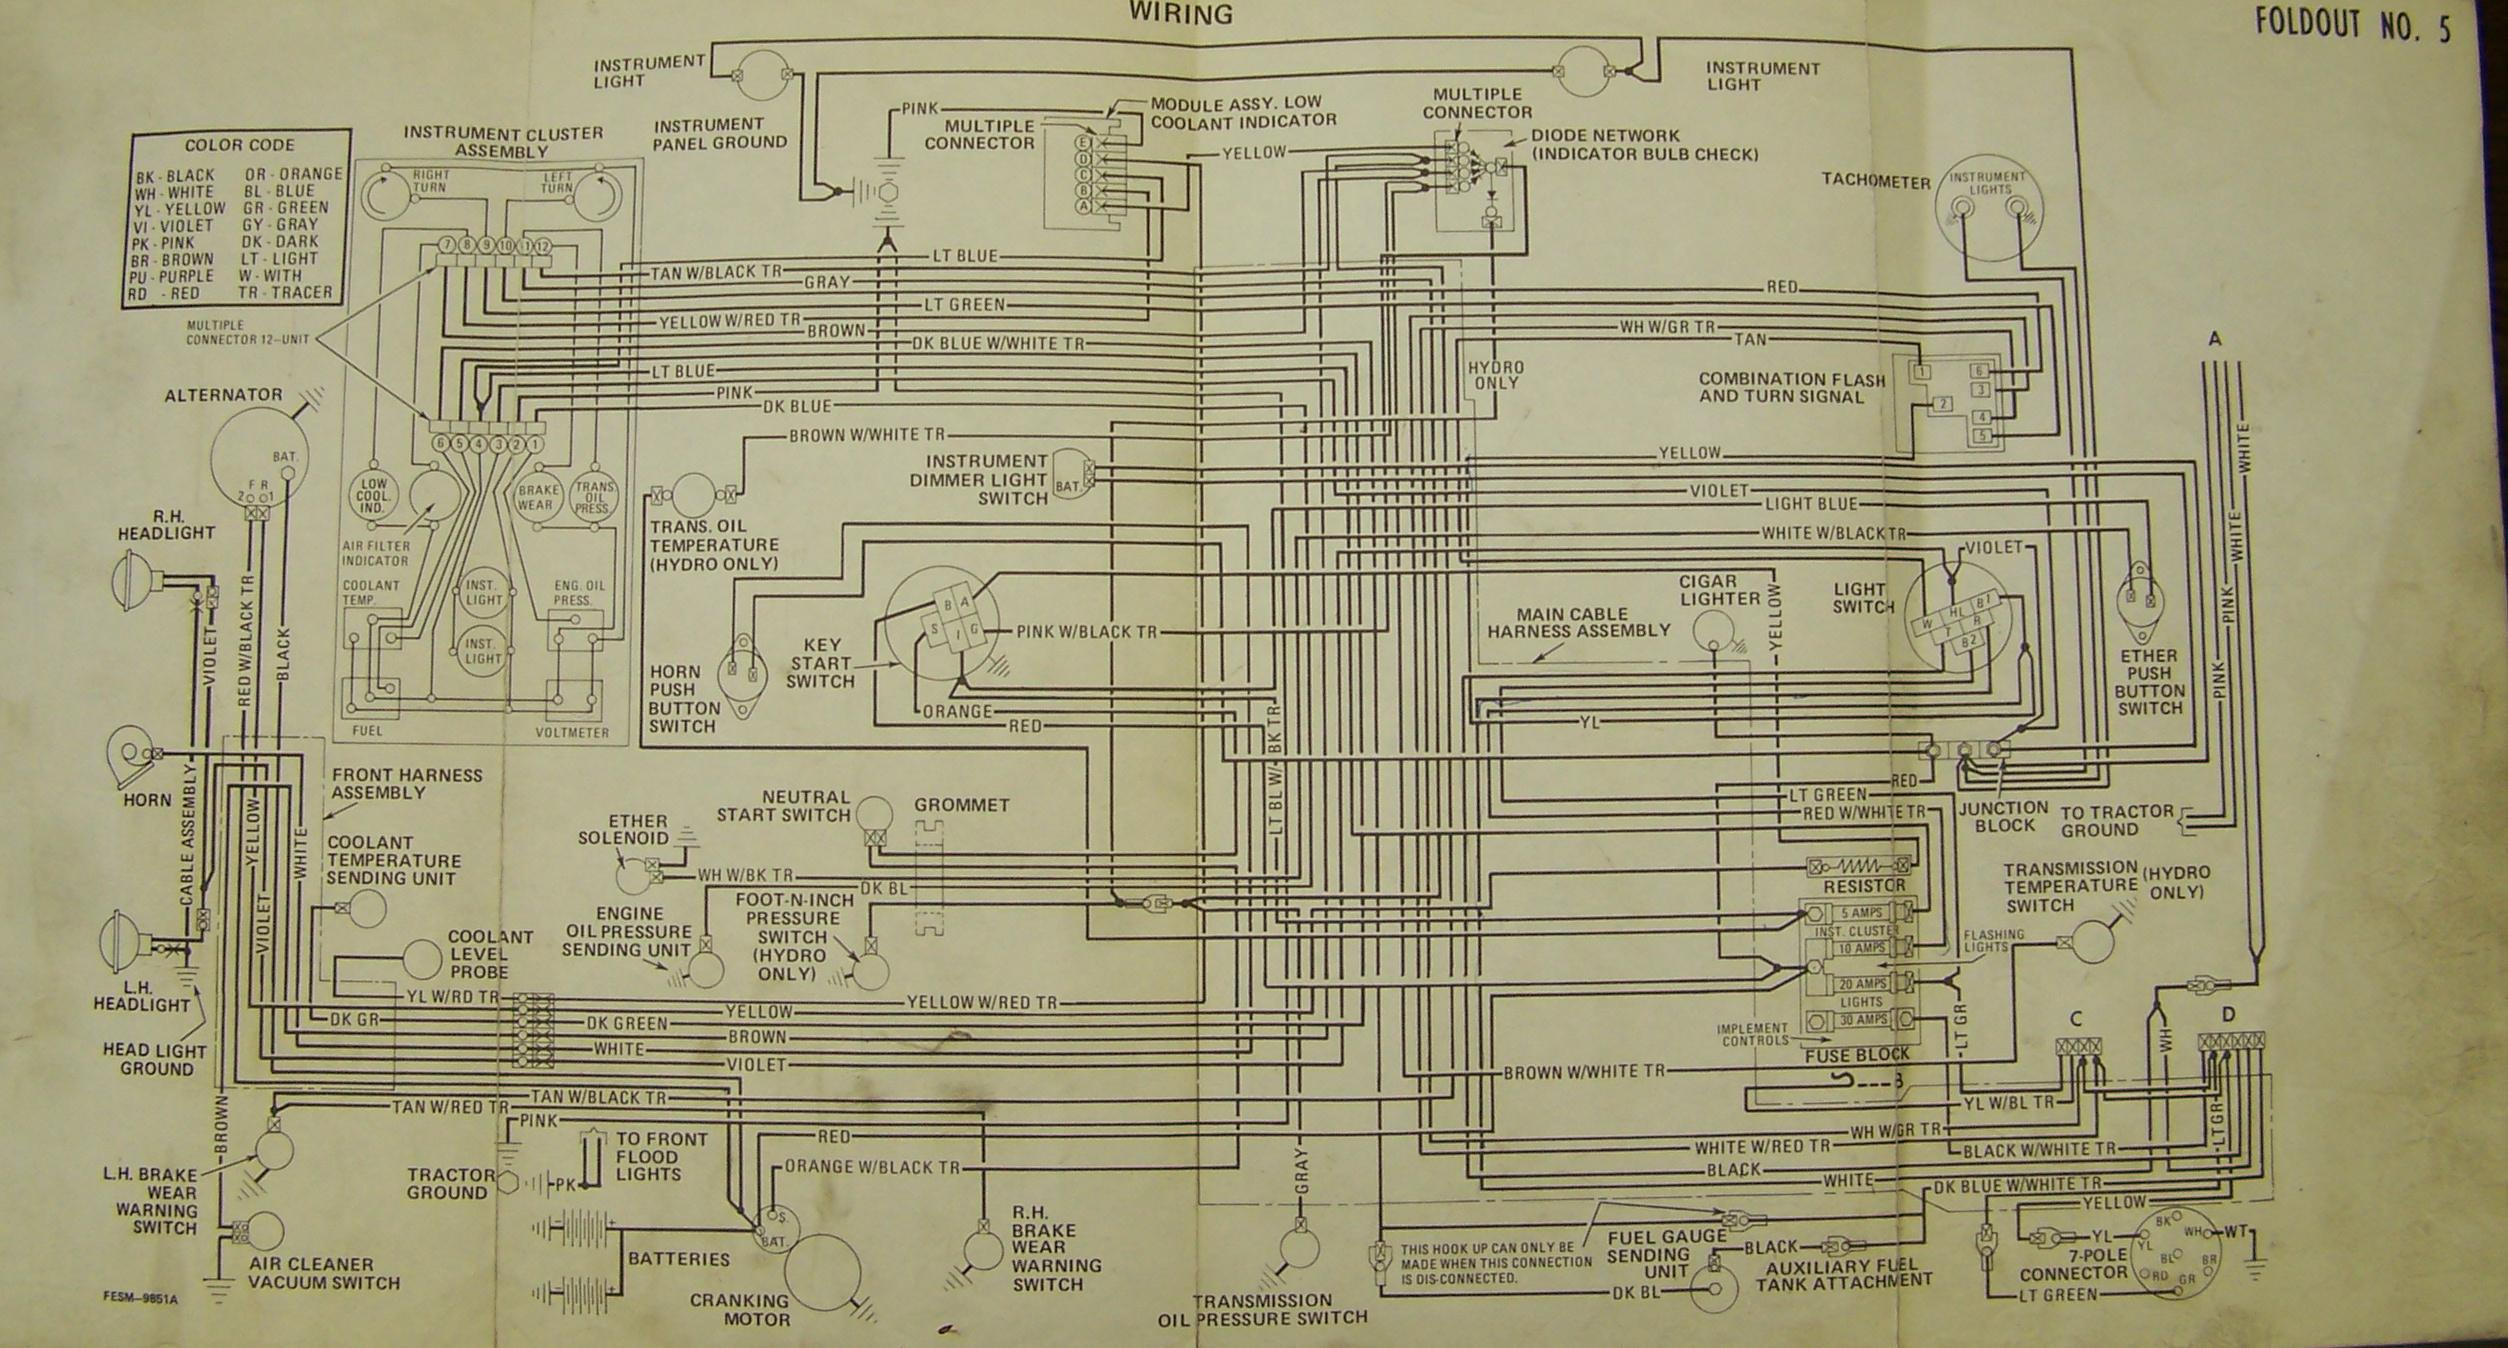 86series5 carter & gruenewald co inc ih farmall tractor electrical wiring diagram for 1086 international tractor at panicattacktreatment.co